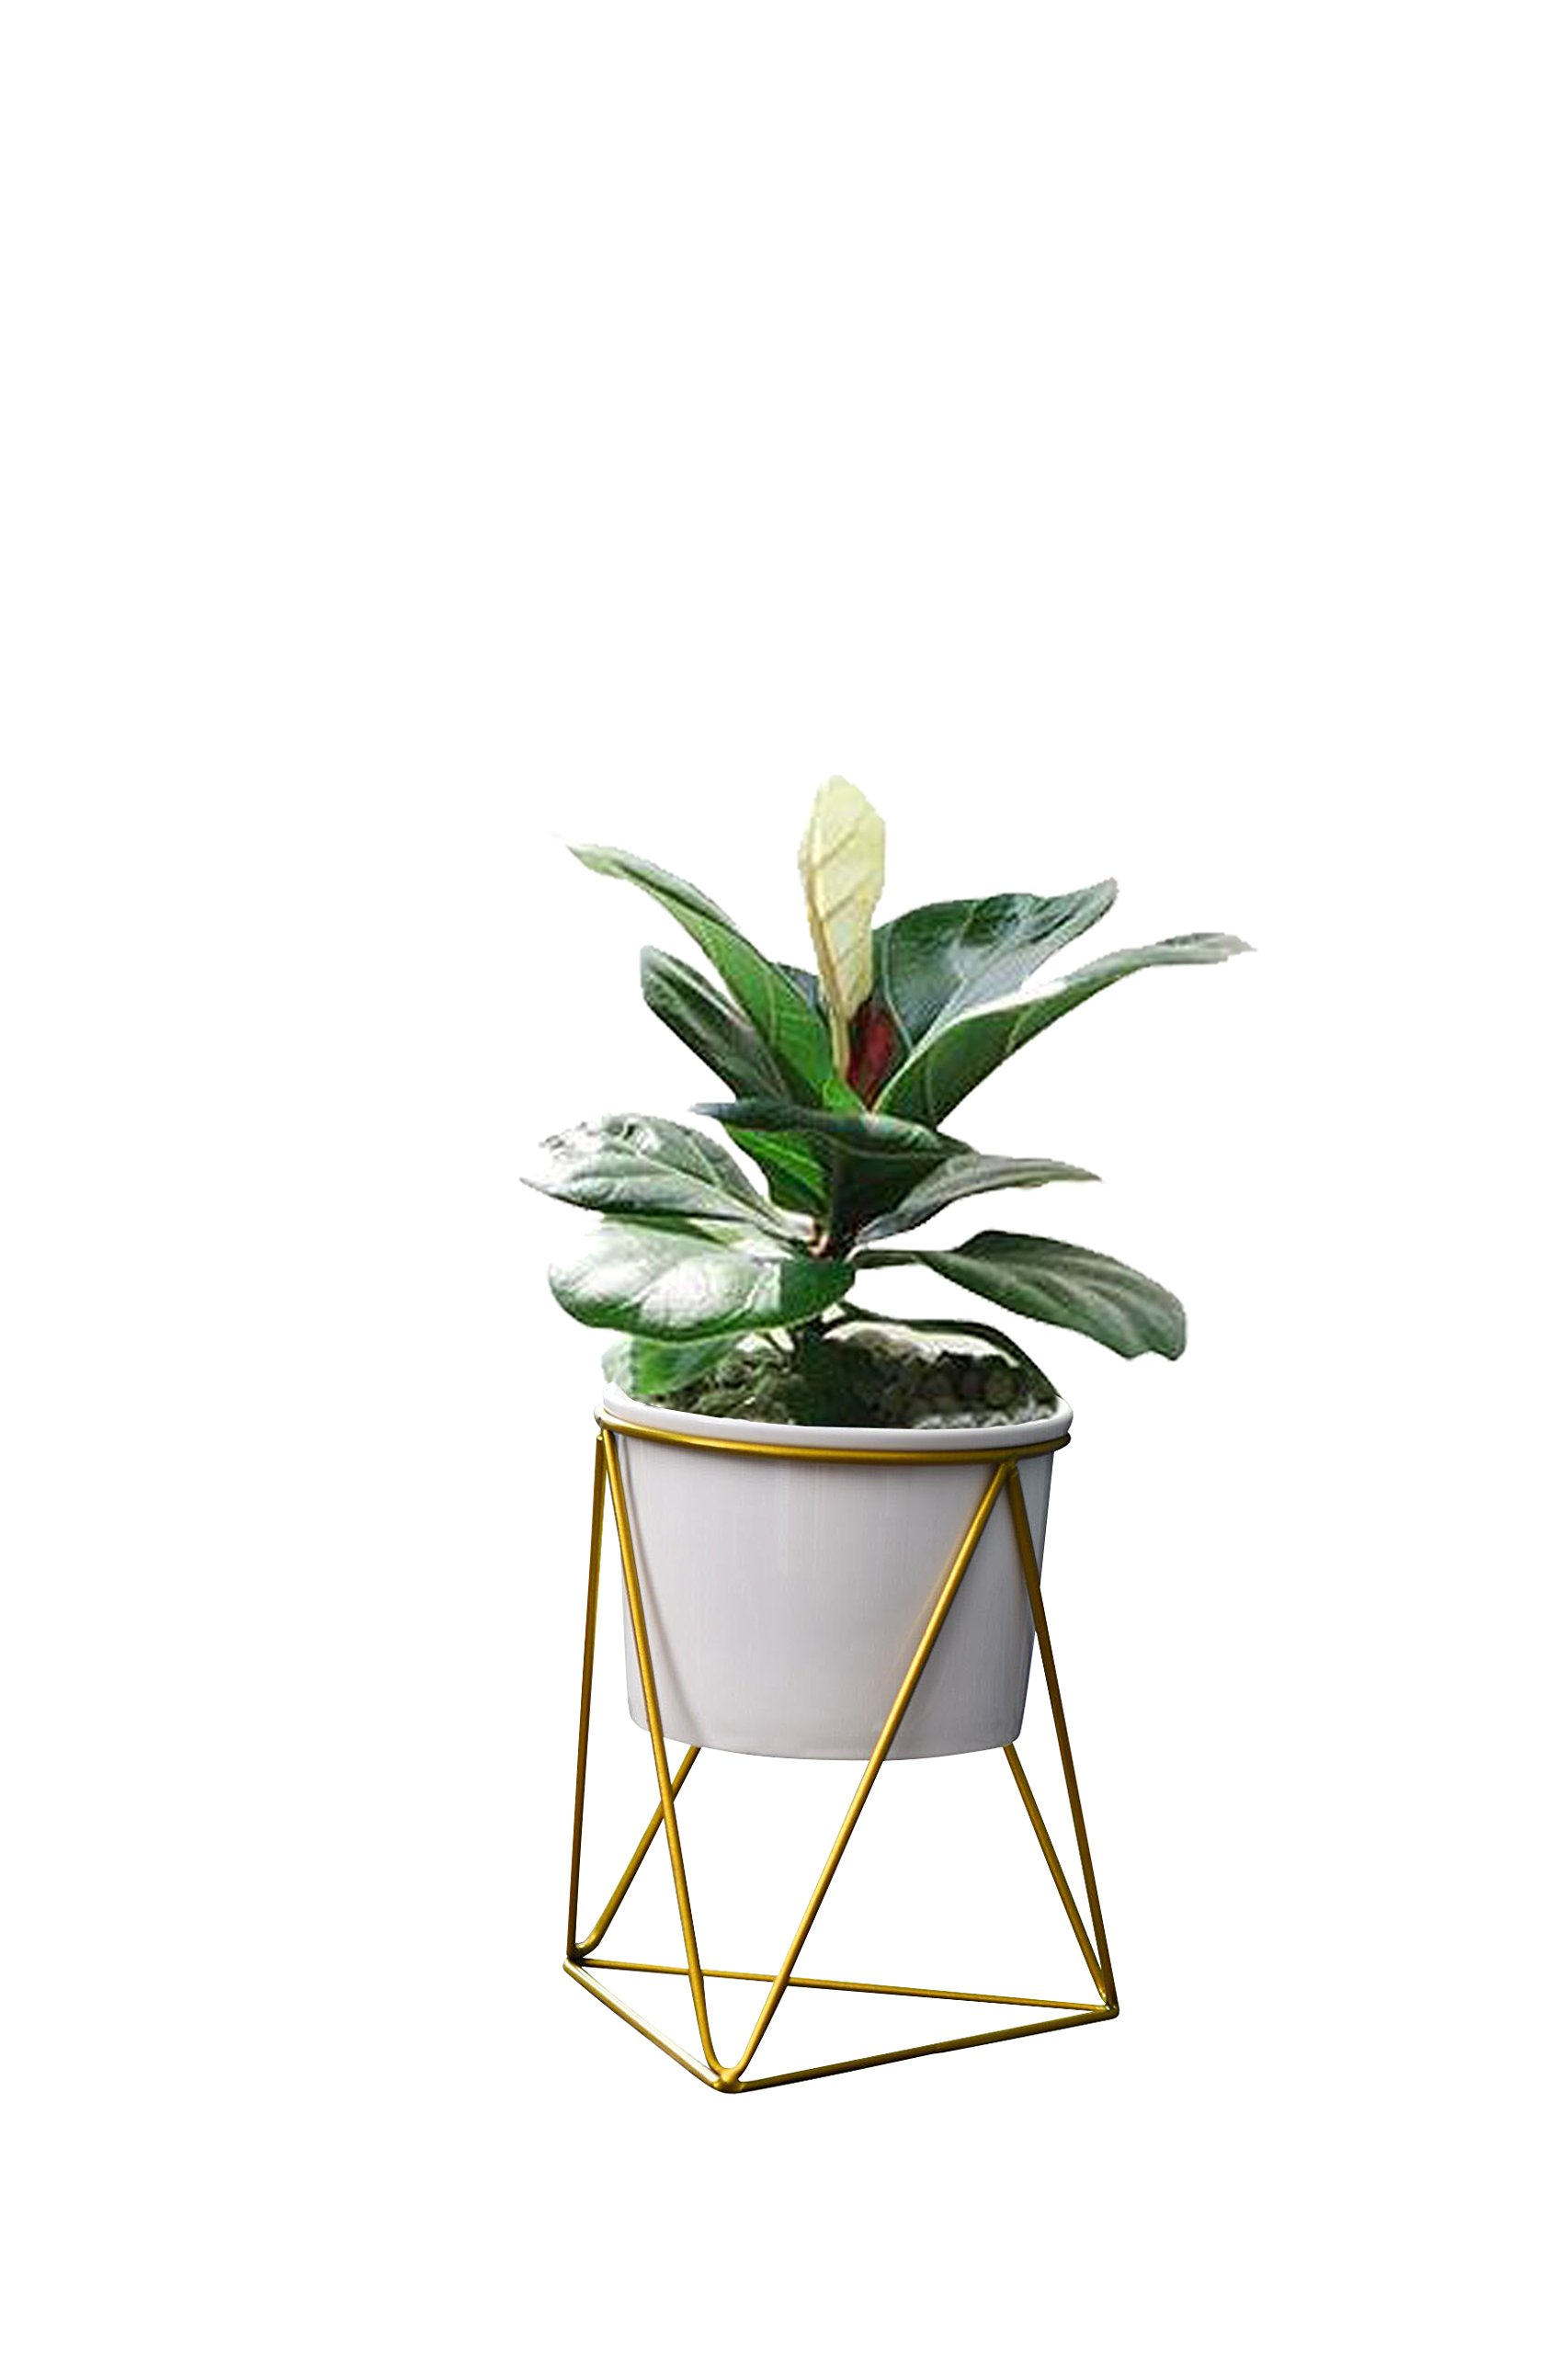 Lainey indoor planter pot modern planter 6'' pot mid century moden planter metal base planter/plan pot indoor/office plants/plant stand (White gold)